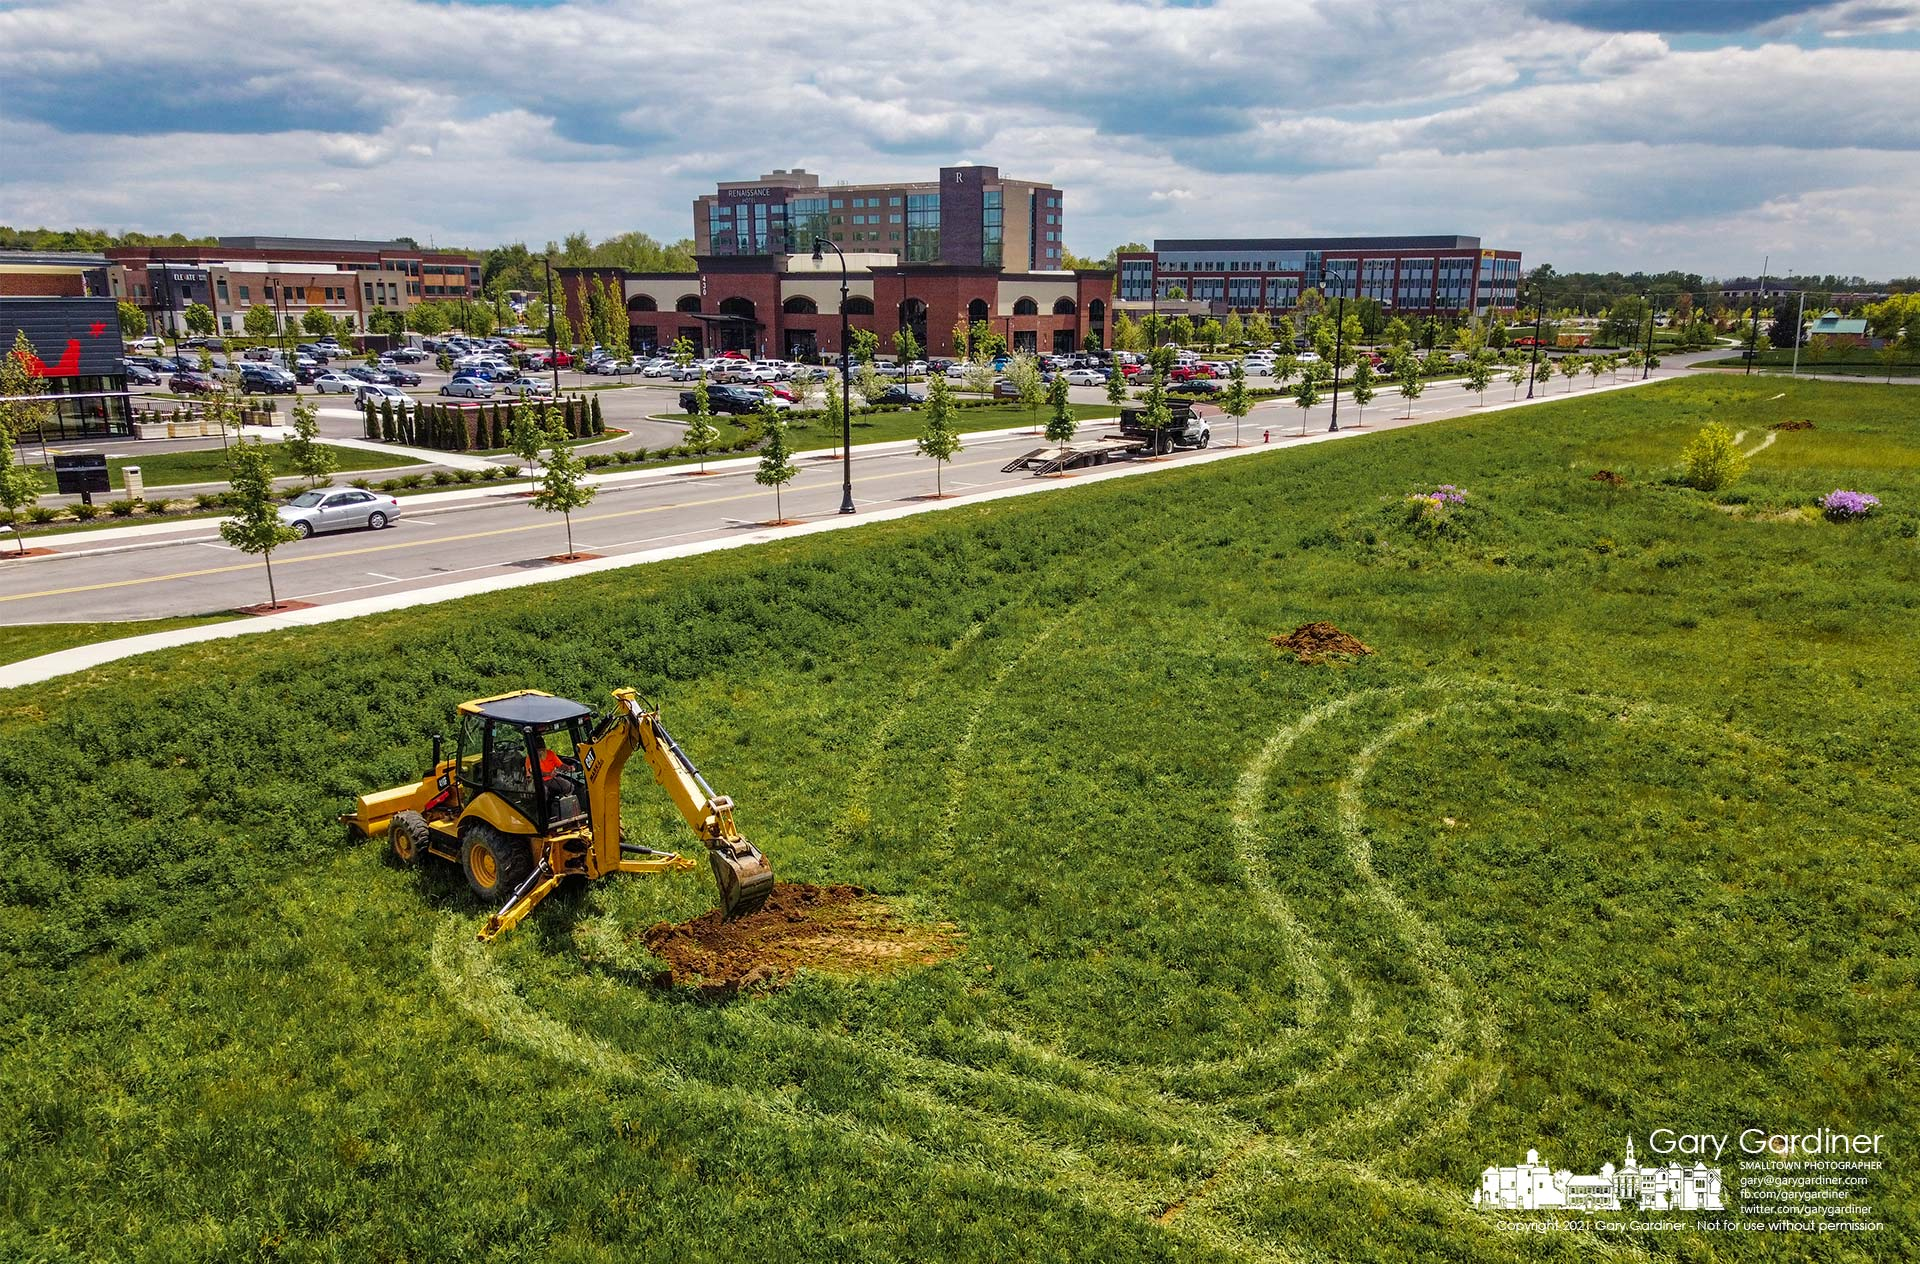 A back-hoe operator fills one of the test trenches dug into an undeveloped section of Westar at the corner of Cleveland and Polaris where developers are exploring new business construction. My Final Photo for May 14, 2021.